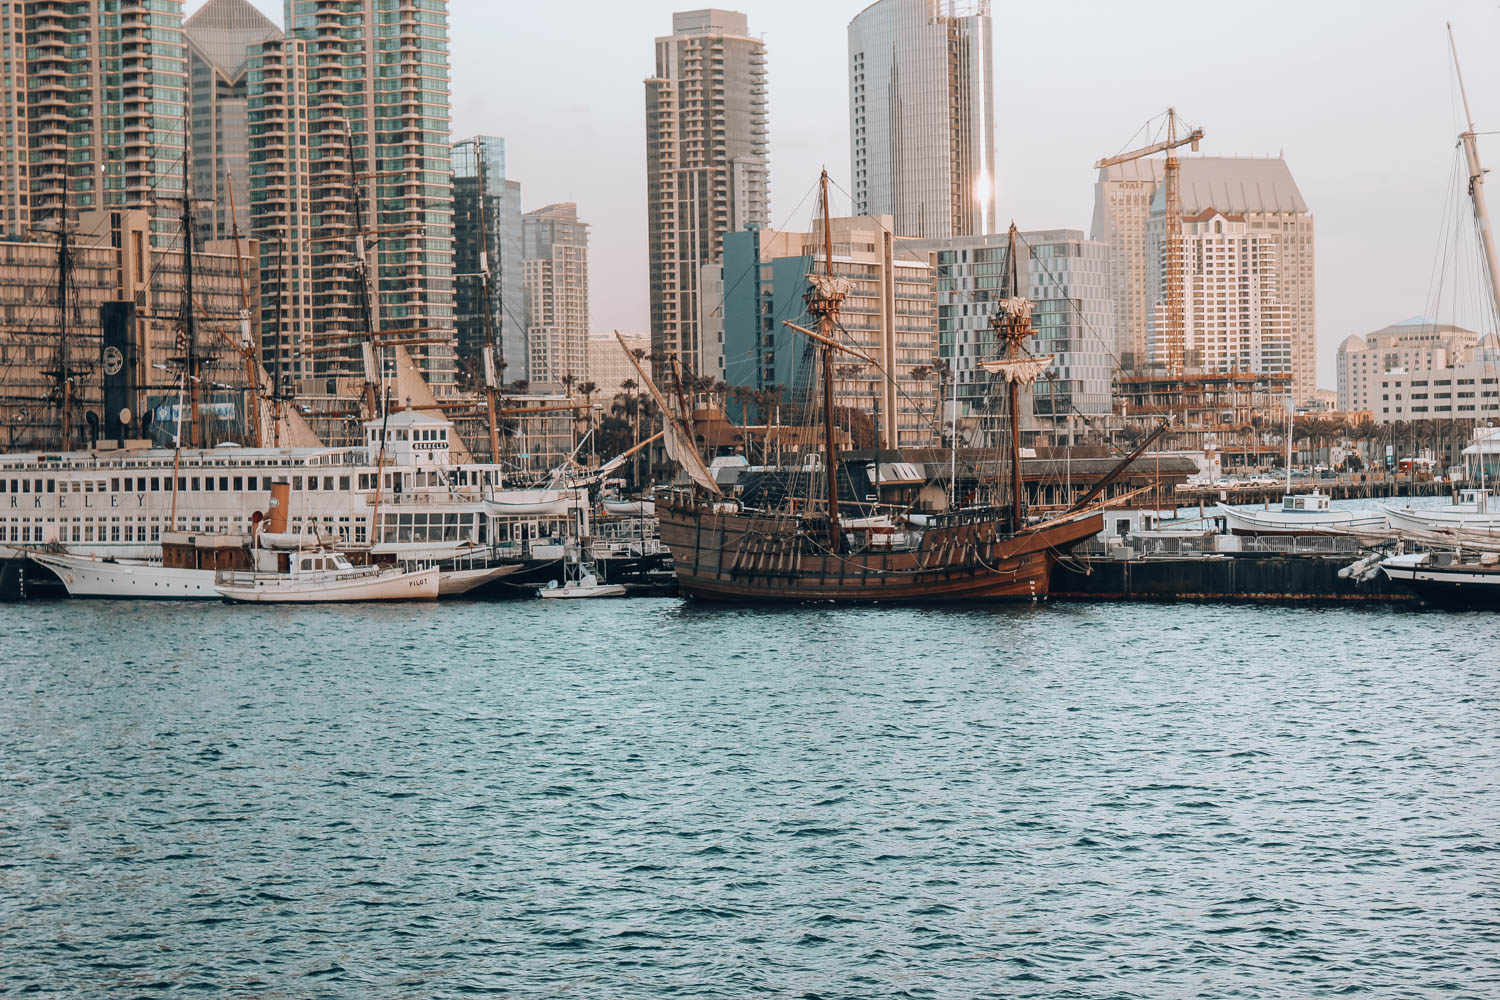 travel-guide-san-diego-recommendations-hornblower-cruise5